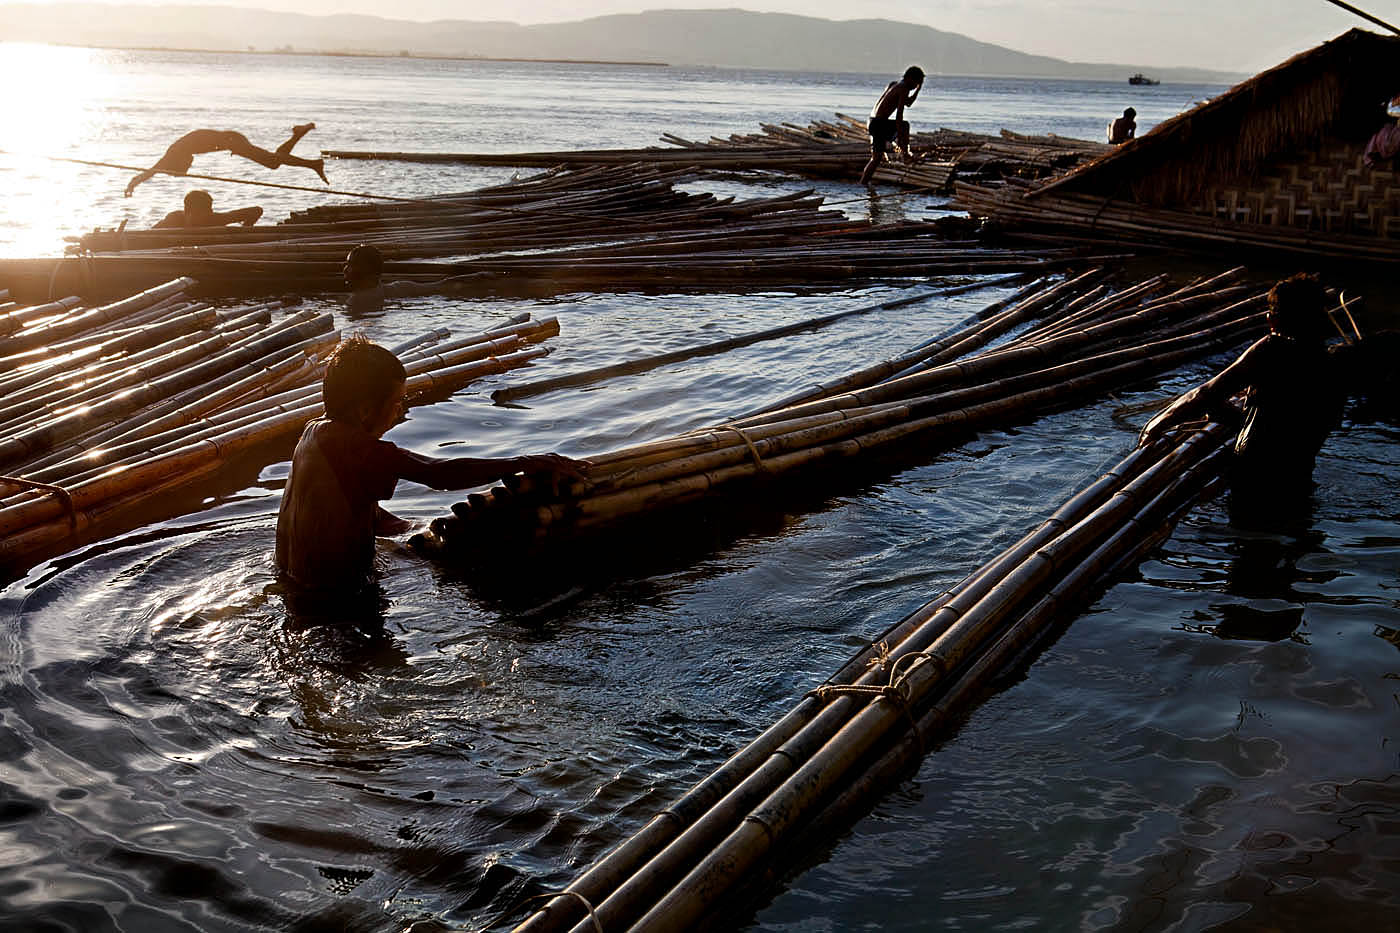 Bamboo Harvesters, Mandalay Harbor.